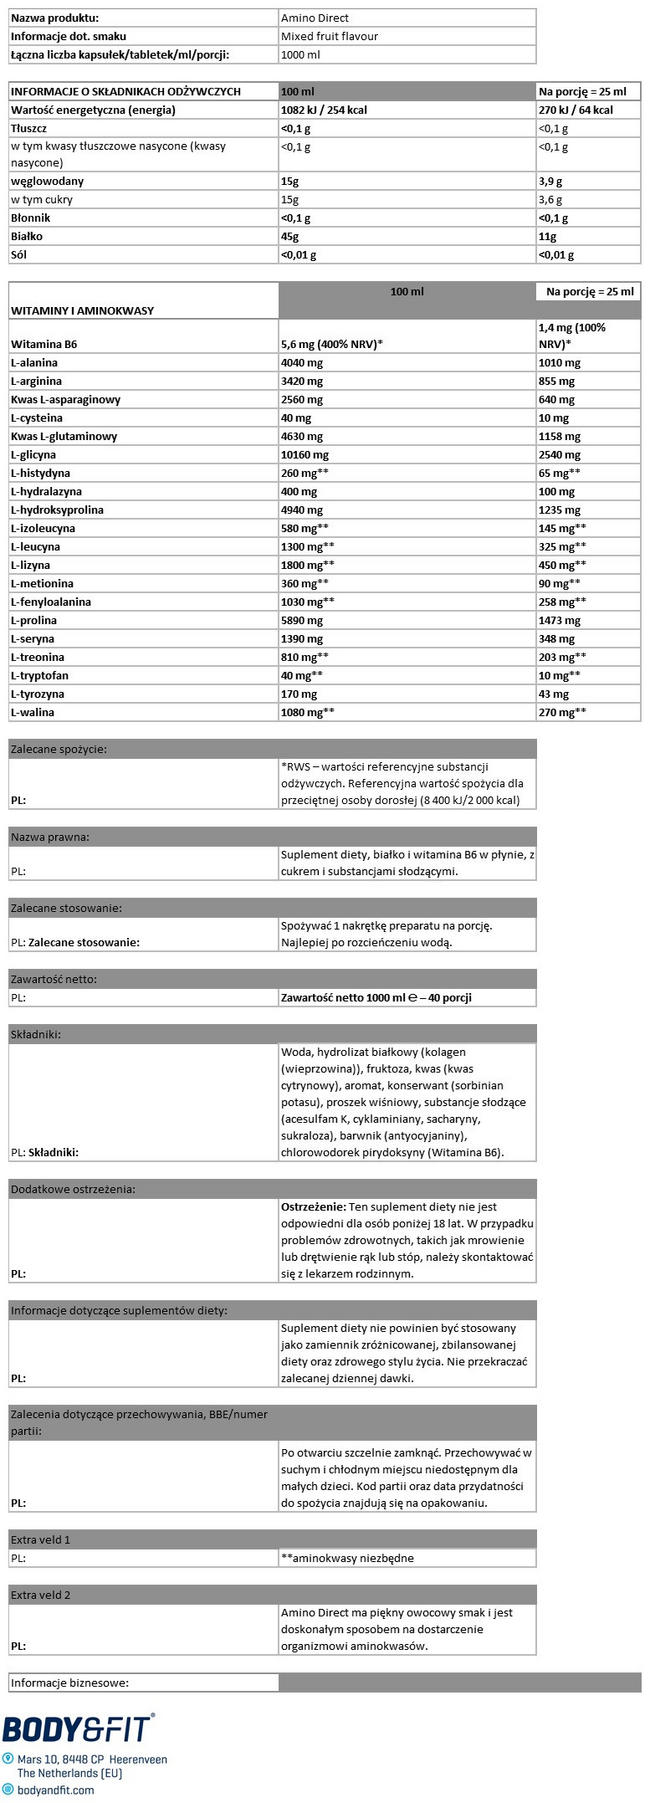 Amino Direct Nutritional Information 1